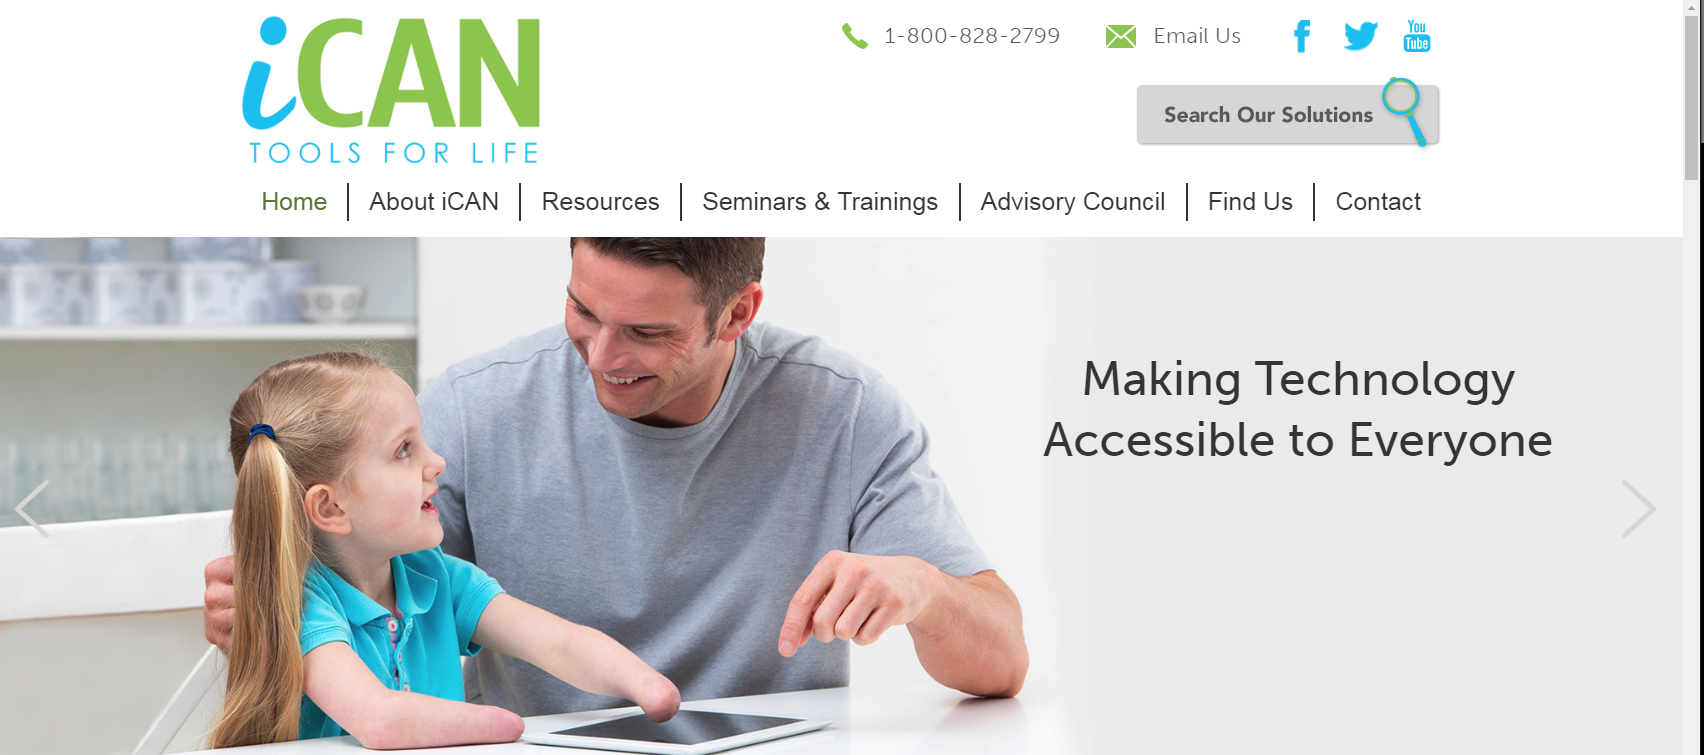 iCAN - iCAN is the Arkansas statewide Assistive Technology program designed to make technology available and accessible for everyone who needs it.